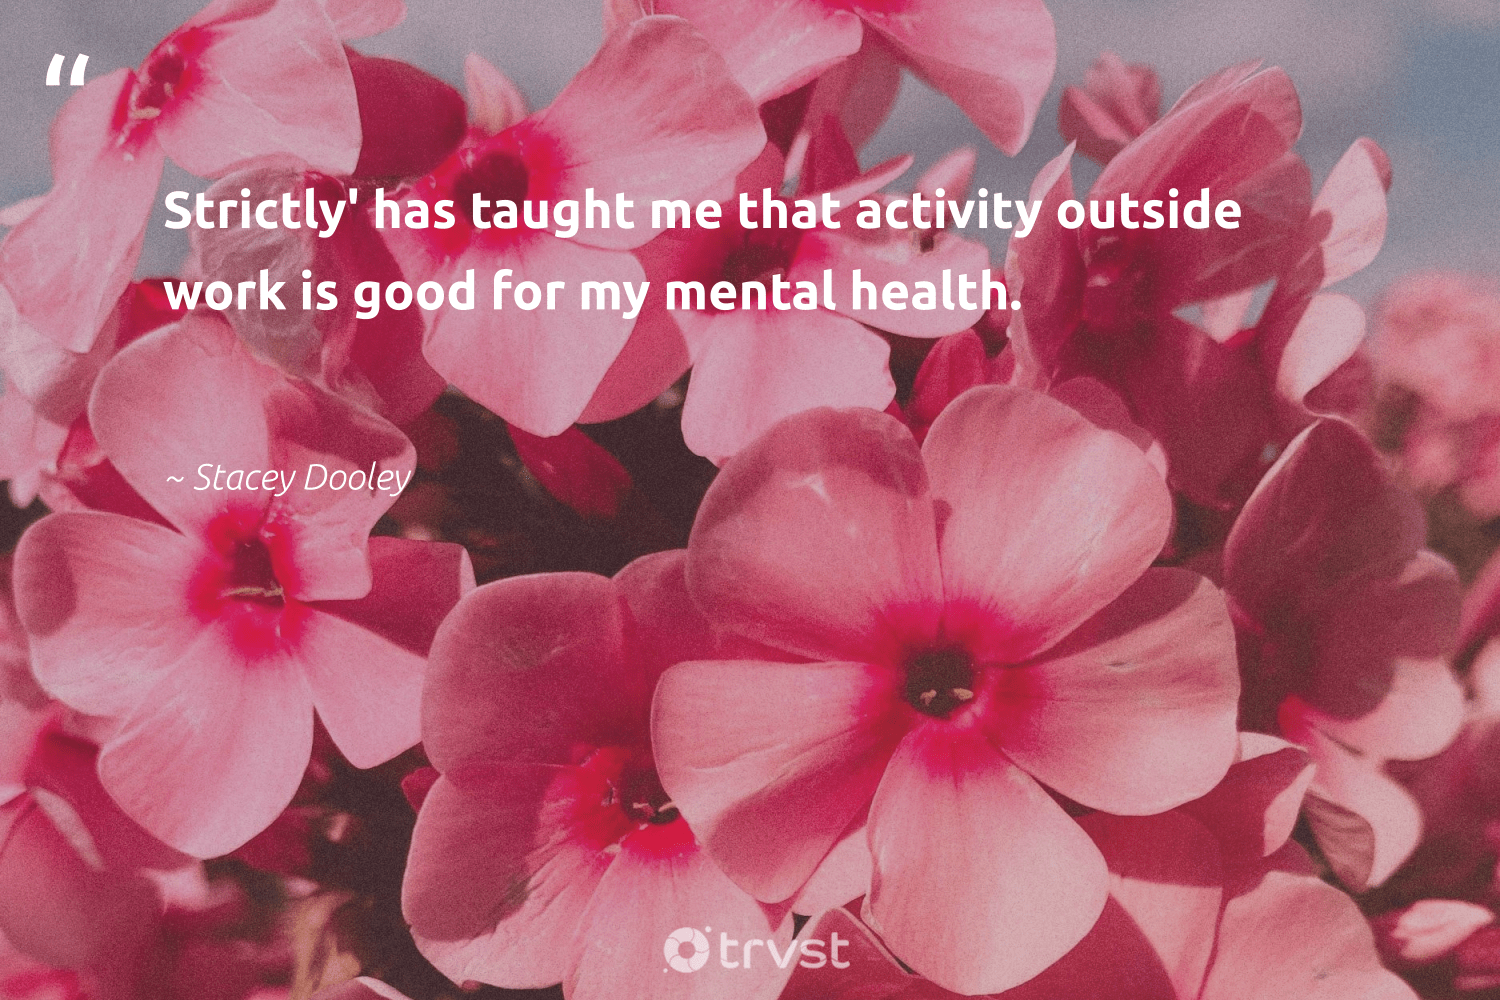 """Strictly' has taught me that activity outside work is good for my mental health.""  - Stacey Dooley #trvst #quotes #mentalhealth #health #depression #togetherwecan #nevergiveup #ecoconscious #anxiety #mindset #begreat #beinspired"